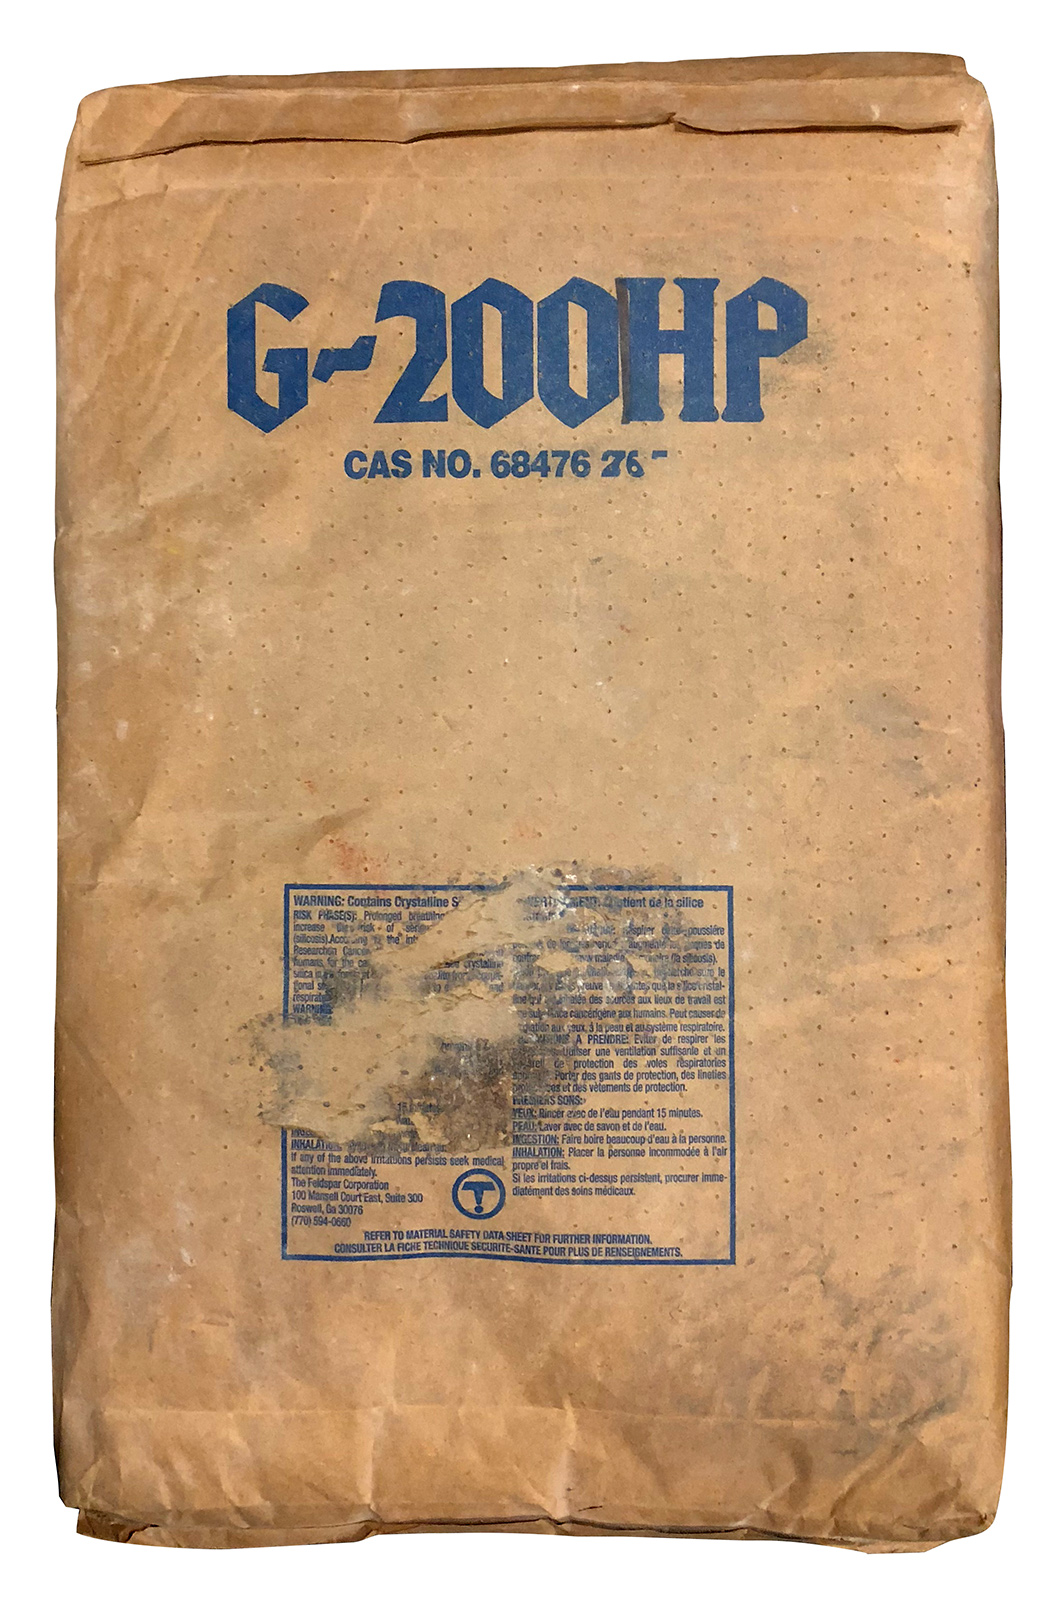 G200HP Feldspar bag